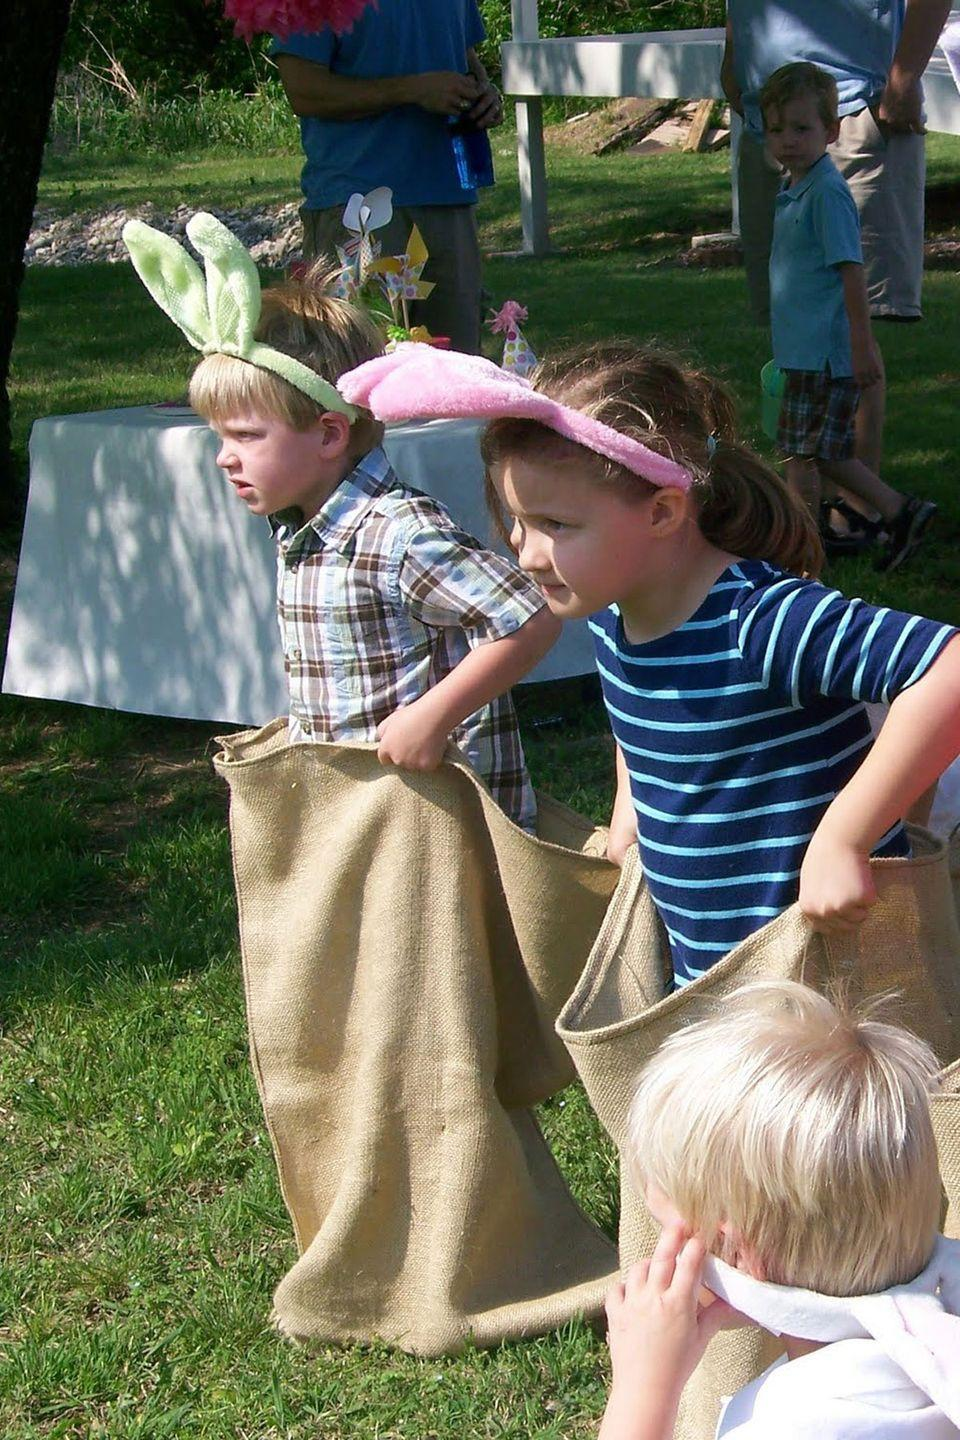 "<p>Upgrade your standard potato sack race for Easter with this fun party idea.</p><p><strong>Get the tutorial at <a href=""http://porch.com/gigglesgalore/easter-egg-hunt-party/"" rel=""nofollow noopener"" target=""_blank"" data-ylk=""slk:Giggles Galore"" class=""link rapid-noclick-resp"">Giggles Galore</a>.</strong> </p>"